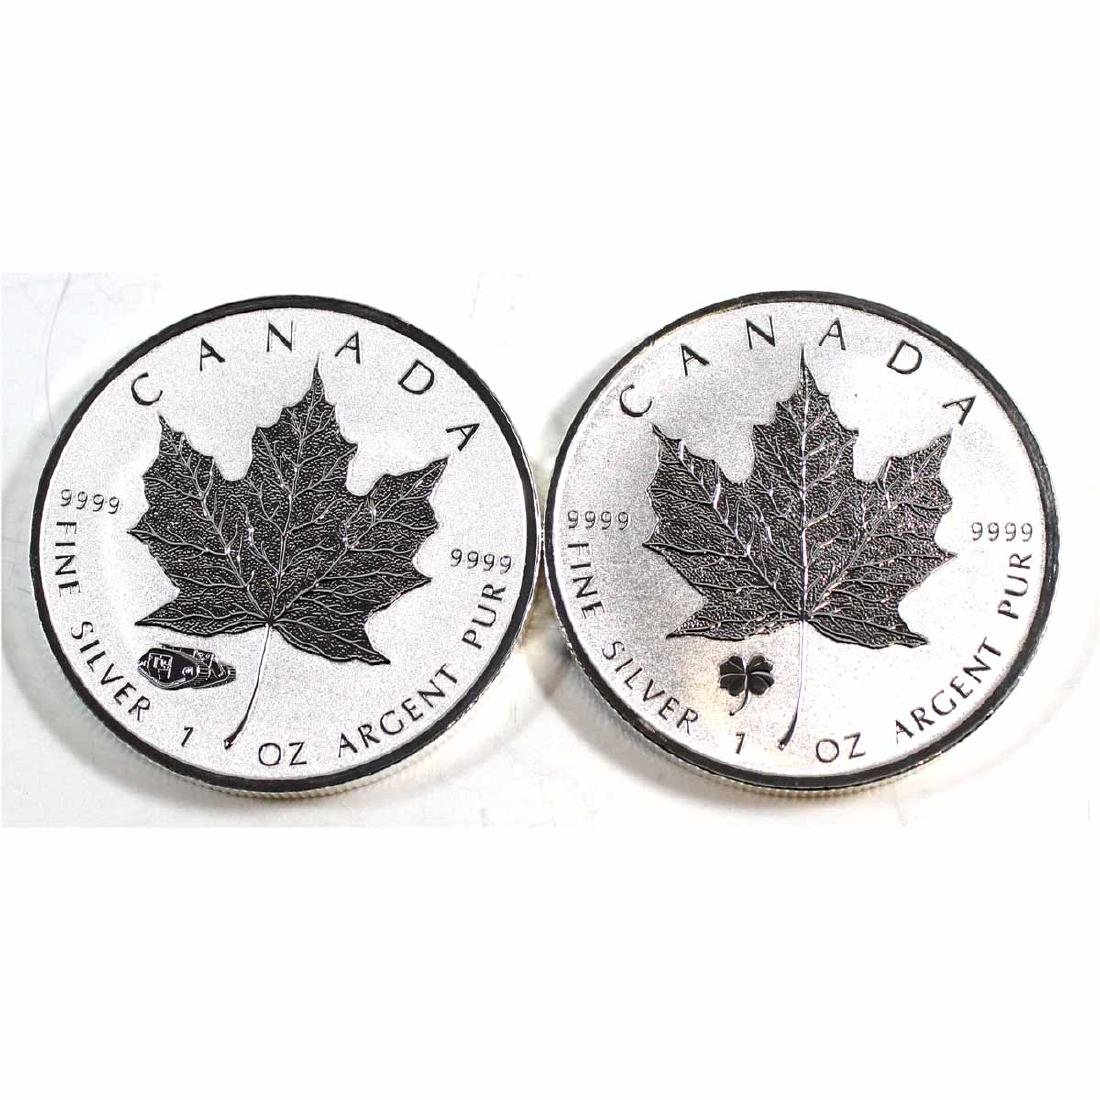 Pair of 2016 Canada $5 Privy Silver Maple Leafs (Tax